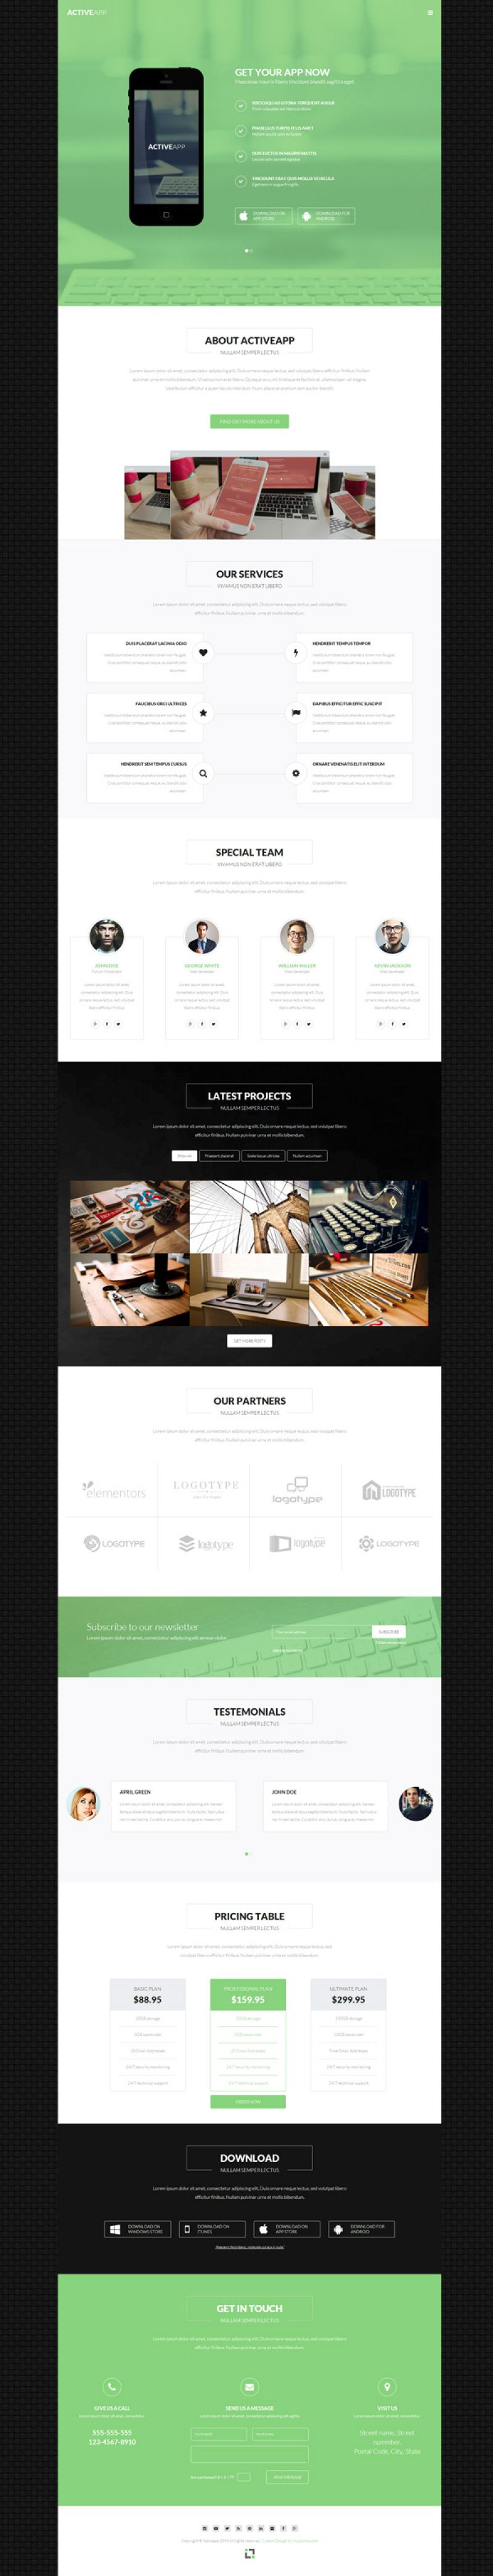 Activeapp - Joomla software presentation template